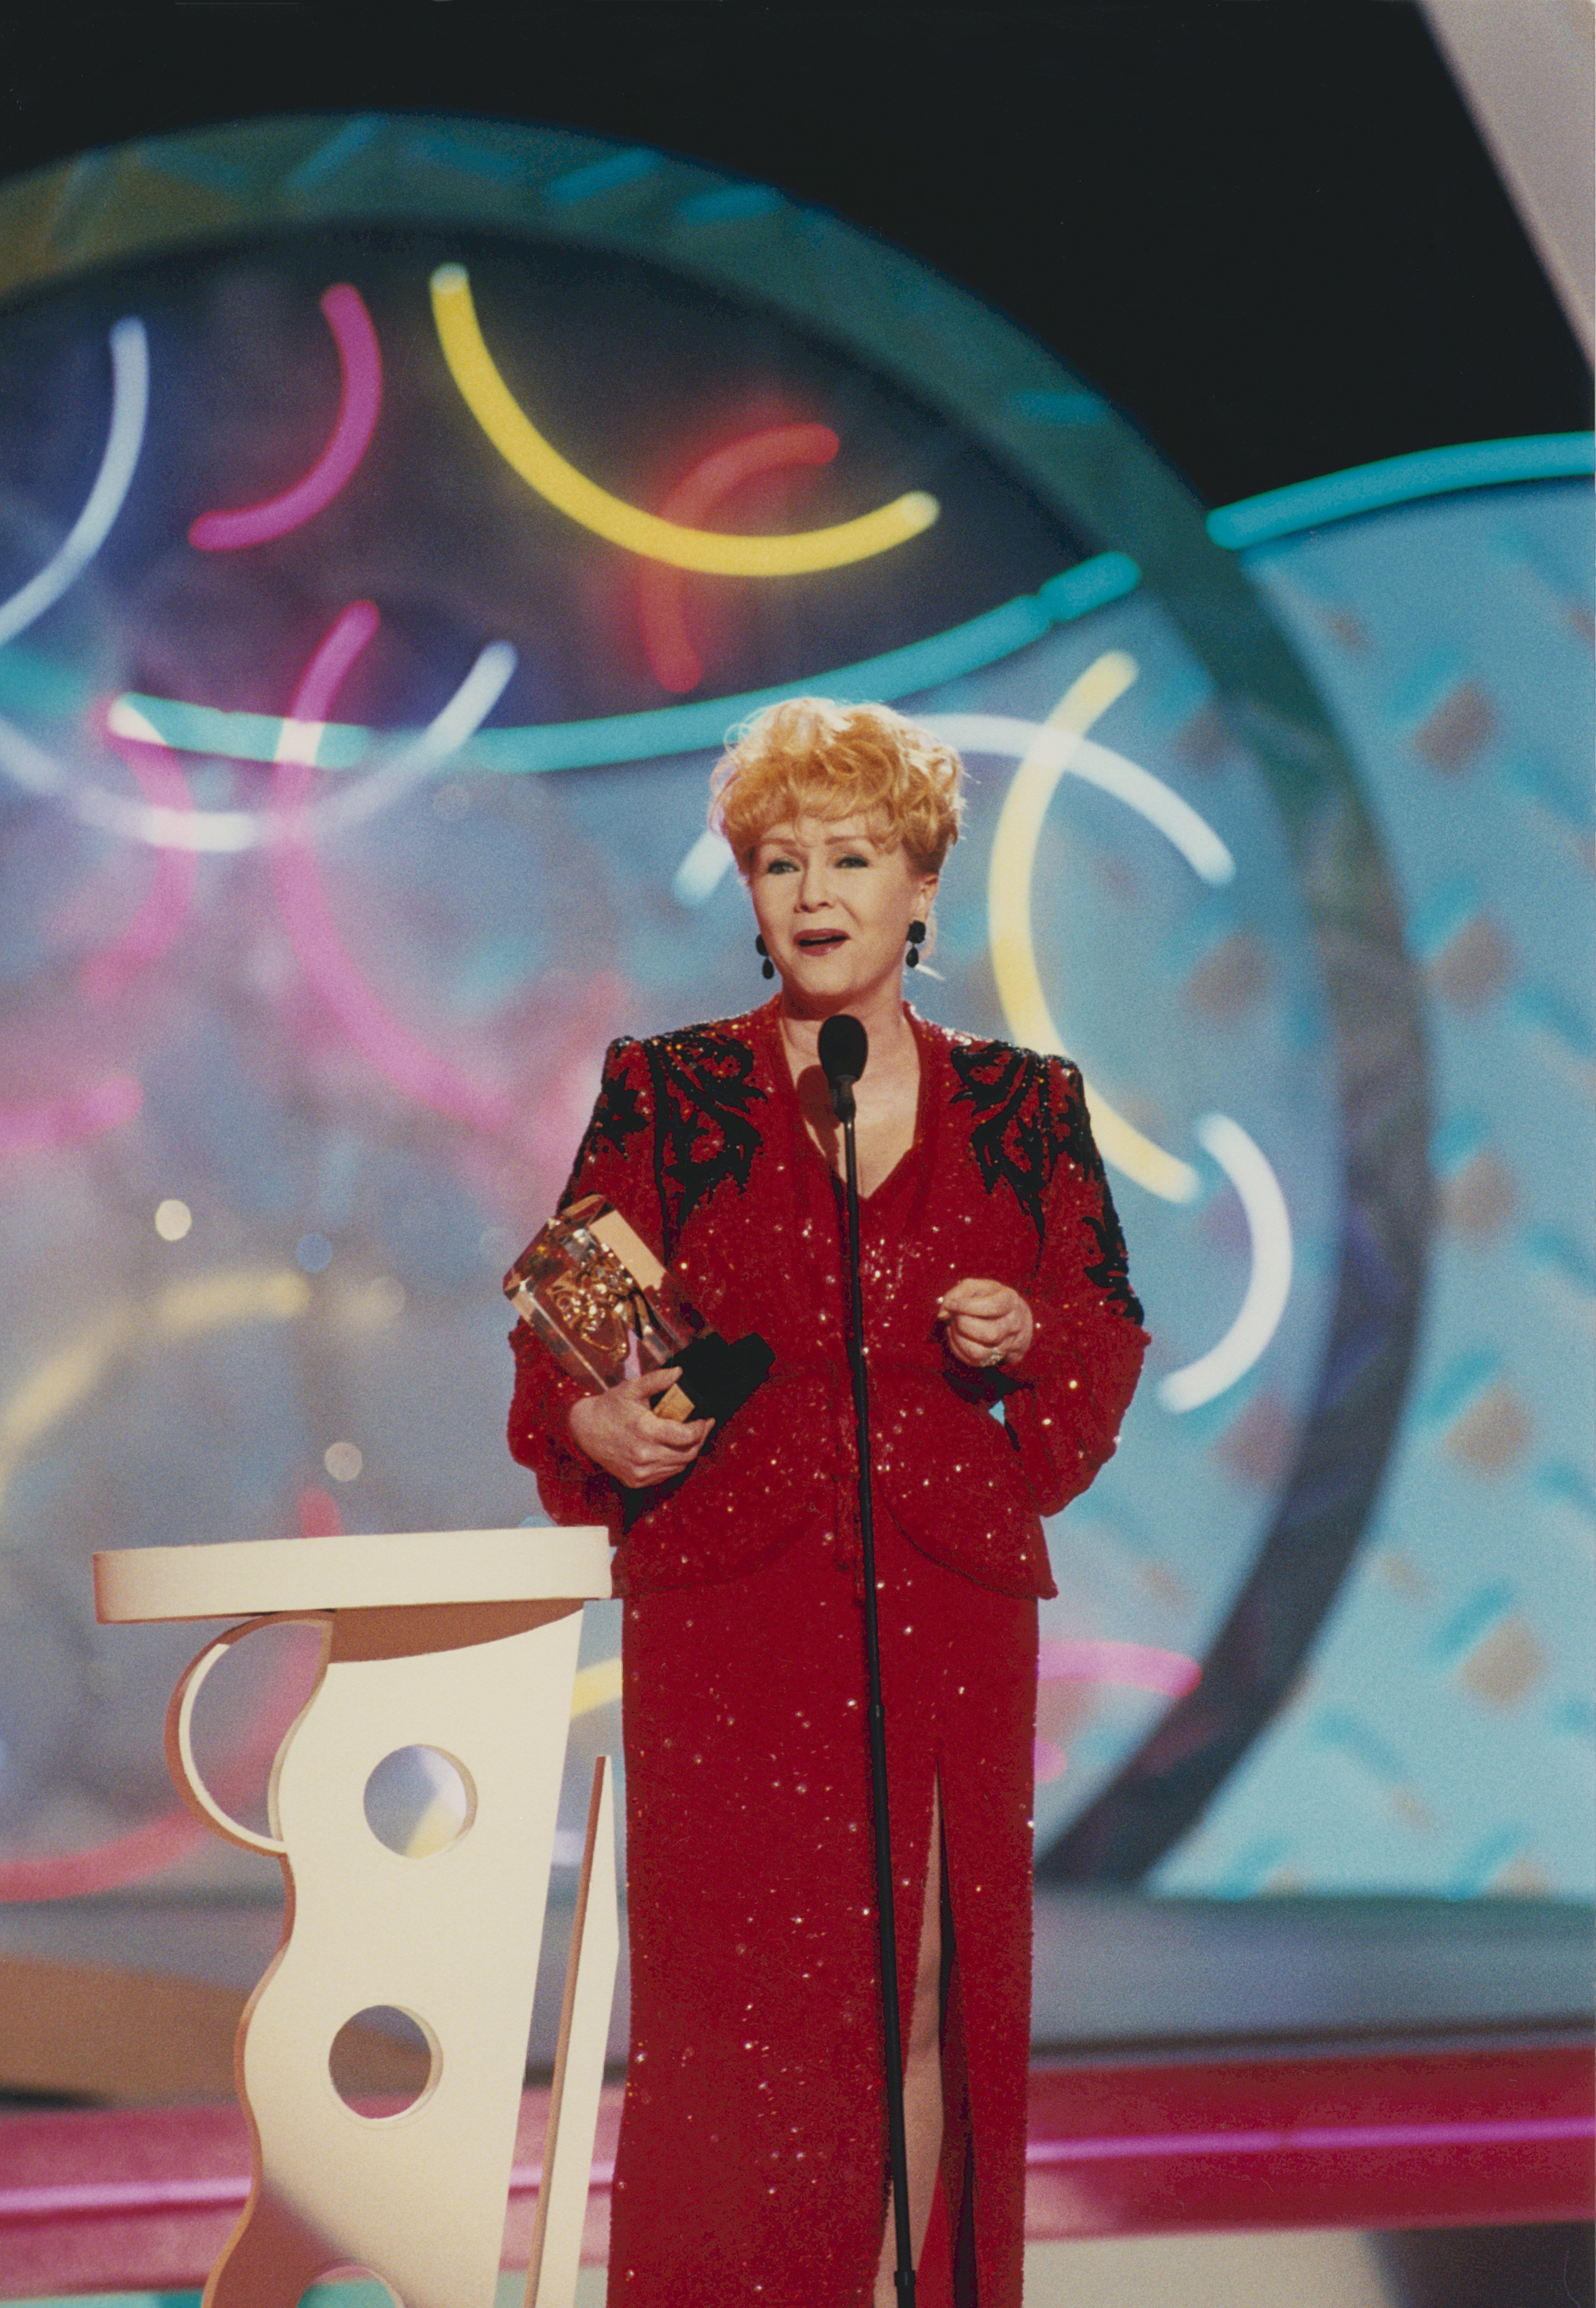 Debbie Reynolds at the American Comedy Awards on February 9, 1997, at the Shrine Auditorium in Los Angeles, California. | Source: Getty Images.